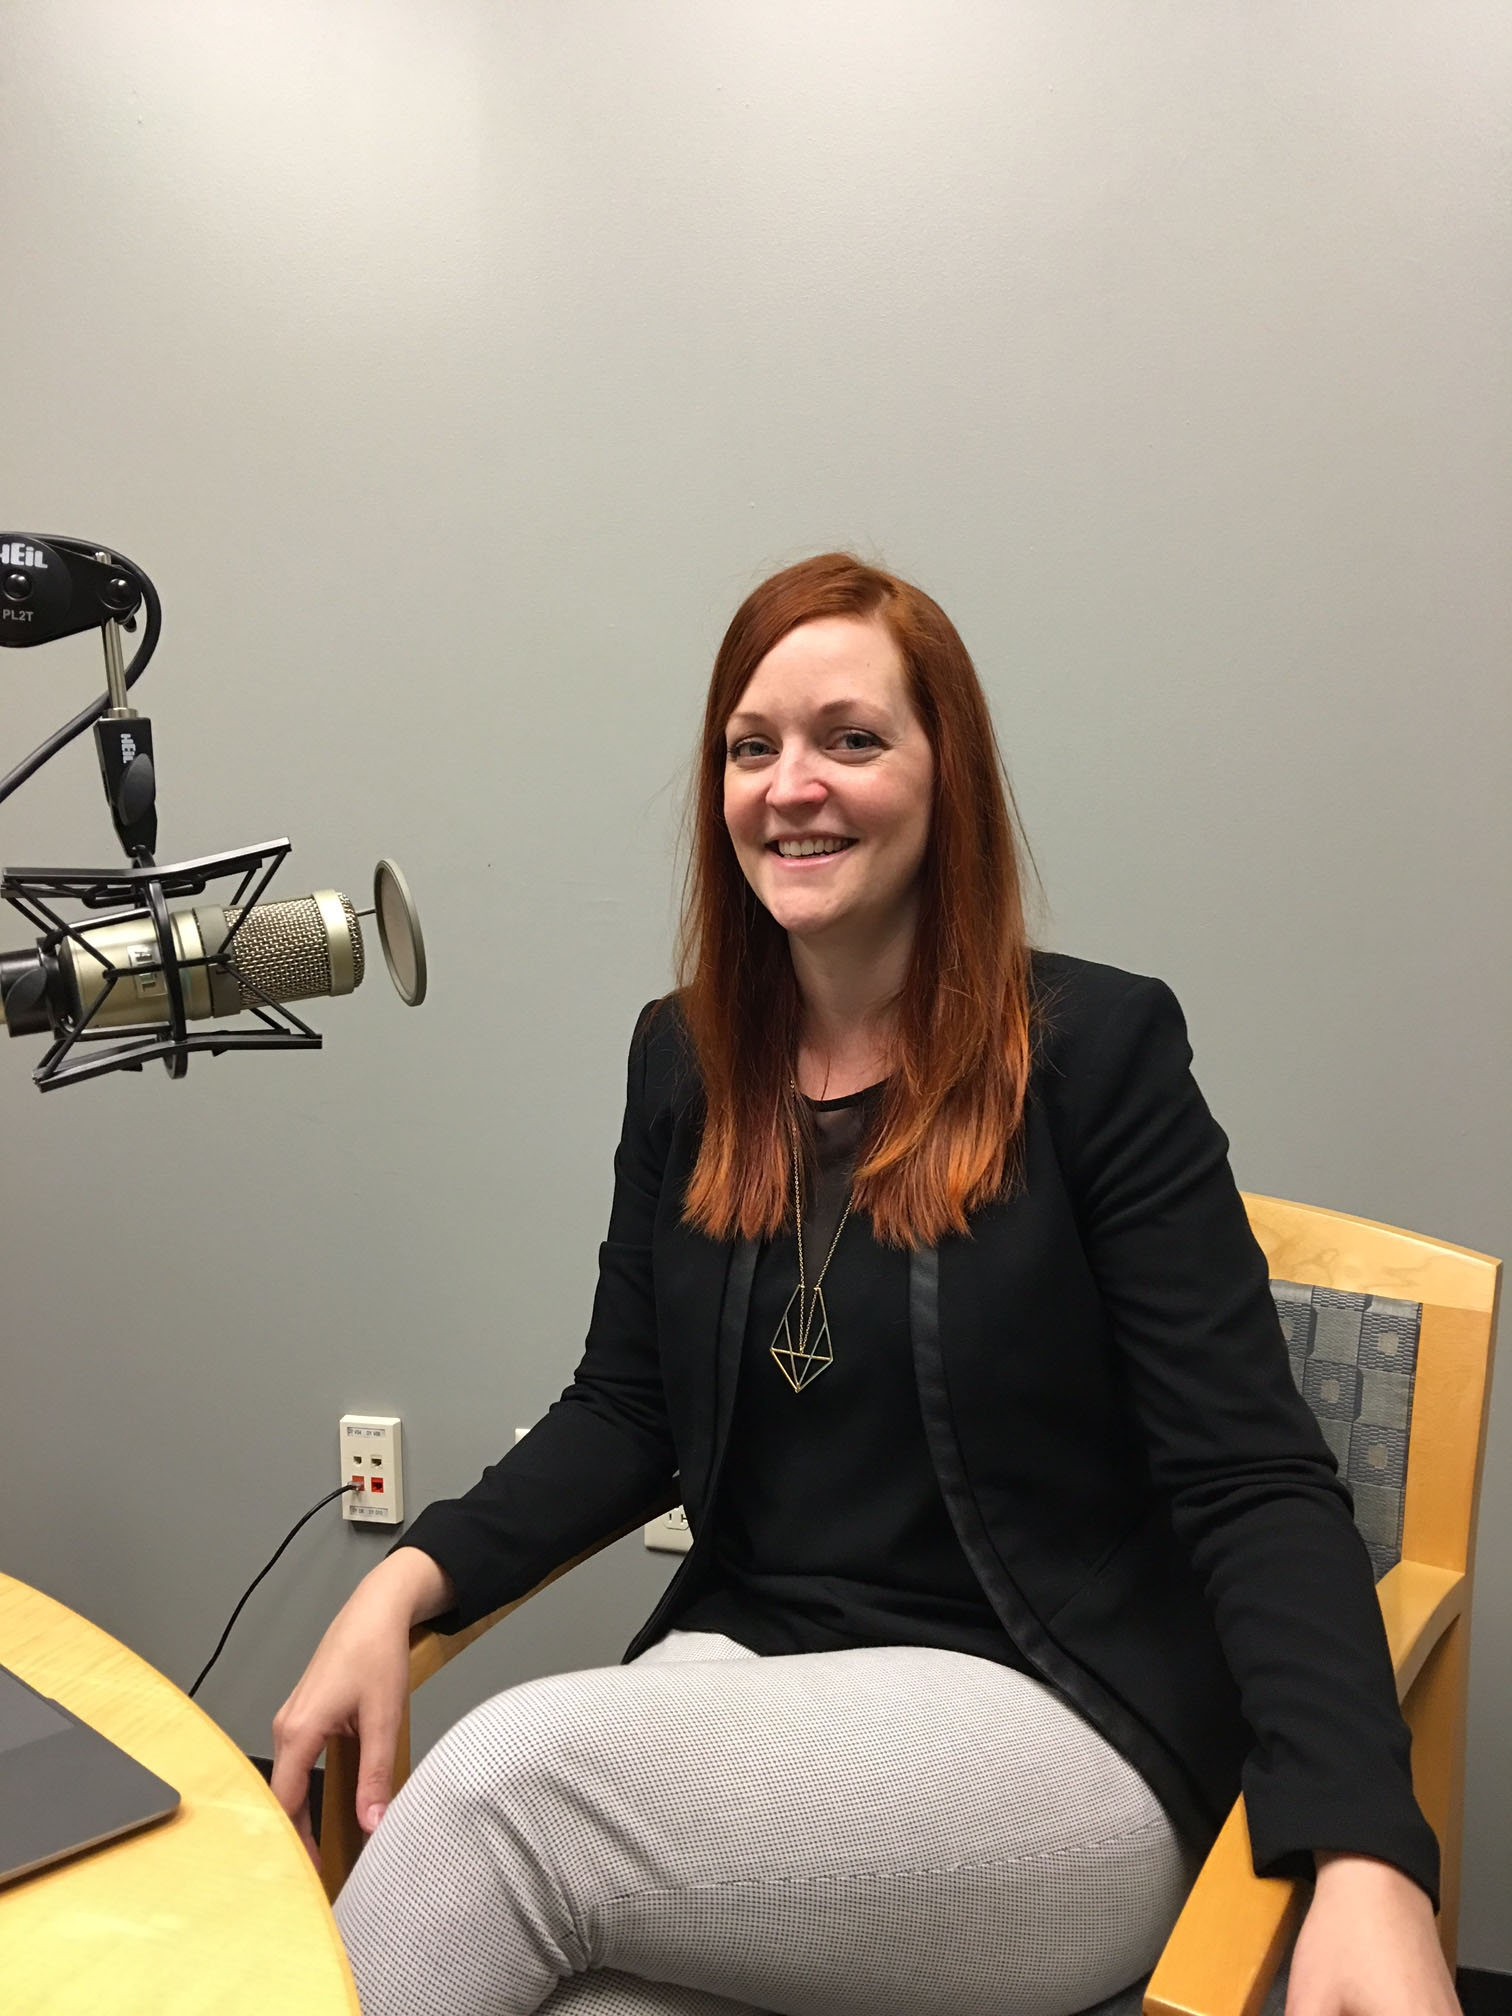 Michelle Levitt started a business, Too Much Neon, with a full-service vocal production studio on the Buffalo Niagara Medical Campus